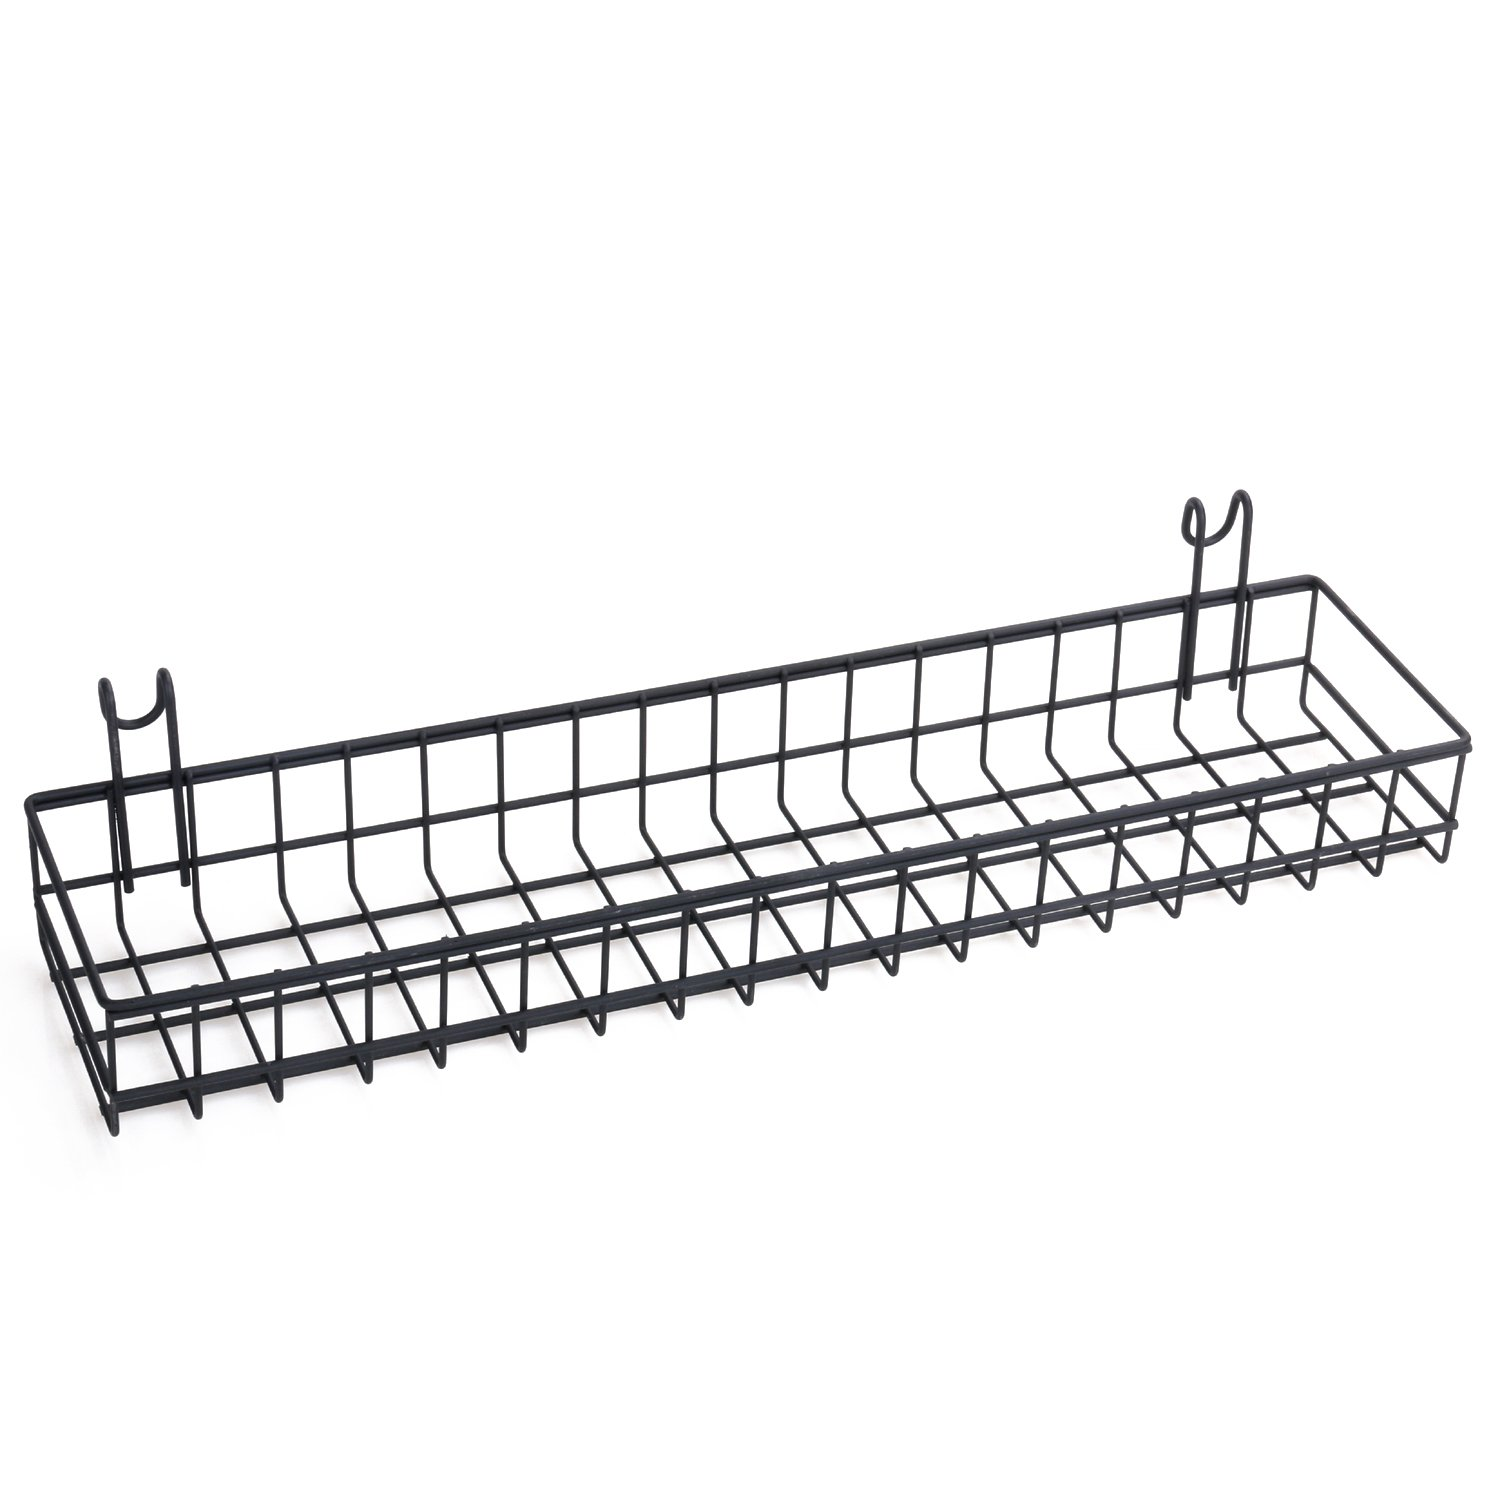 Kufox Multipurpose Mesh Wall Metal Wire Basket, Grid Panel Hanging Tray, Wall Mount Organizer, Wire Storage Shelf Rack For Home Supplies, Wall Decor, Small Size, Black Coated